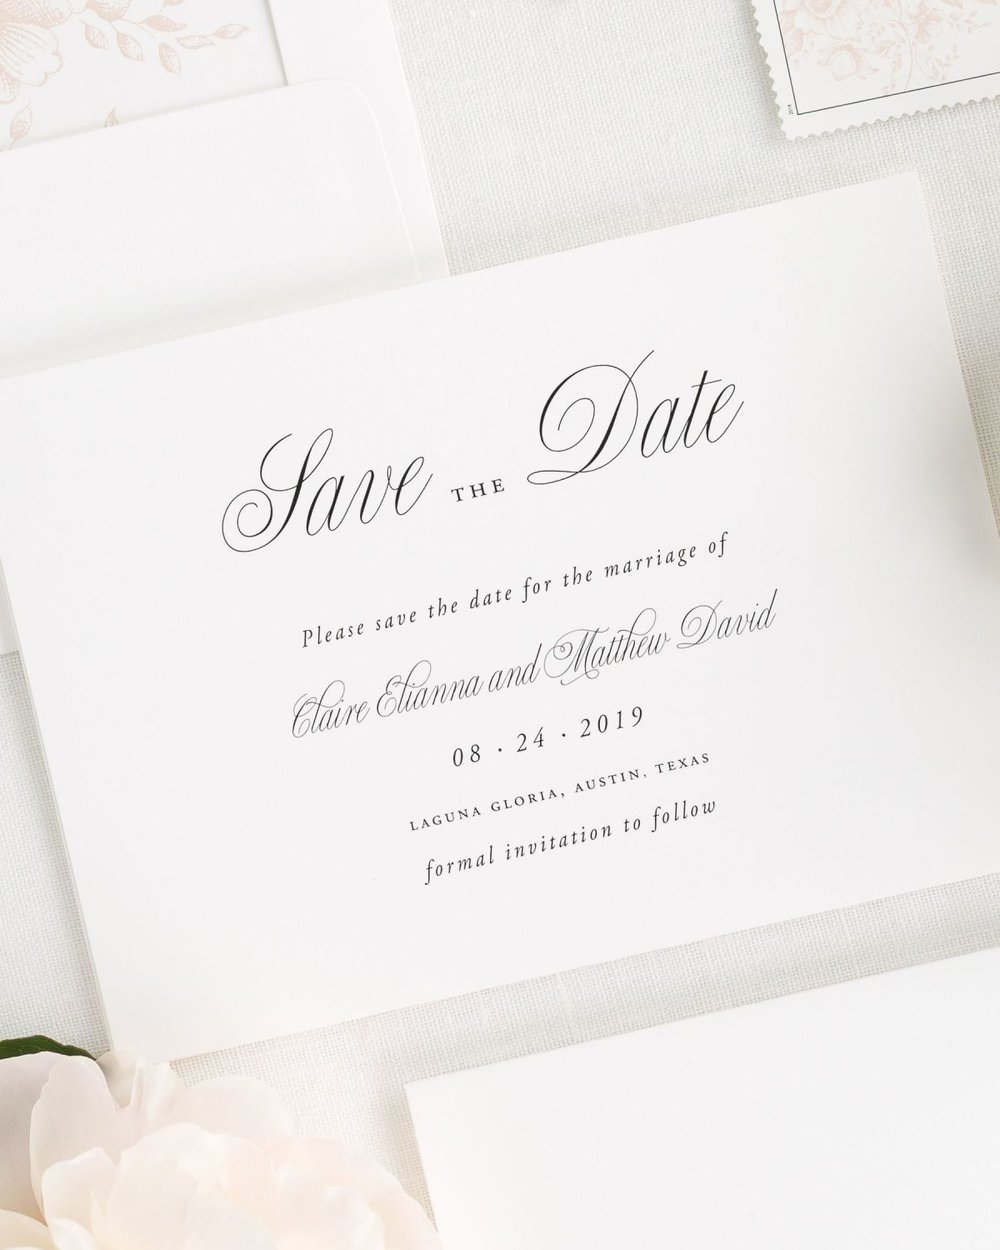 Image via Shine Wedding Invitations